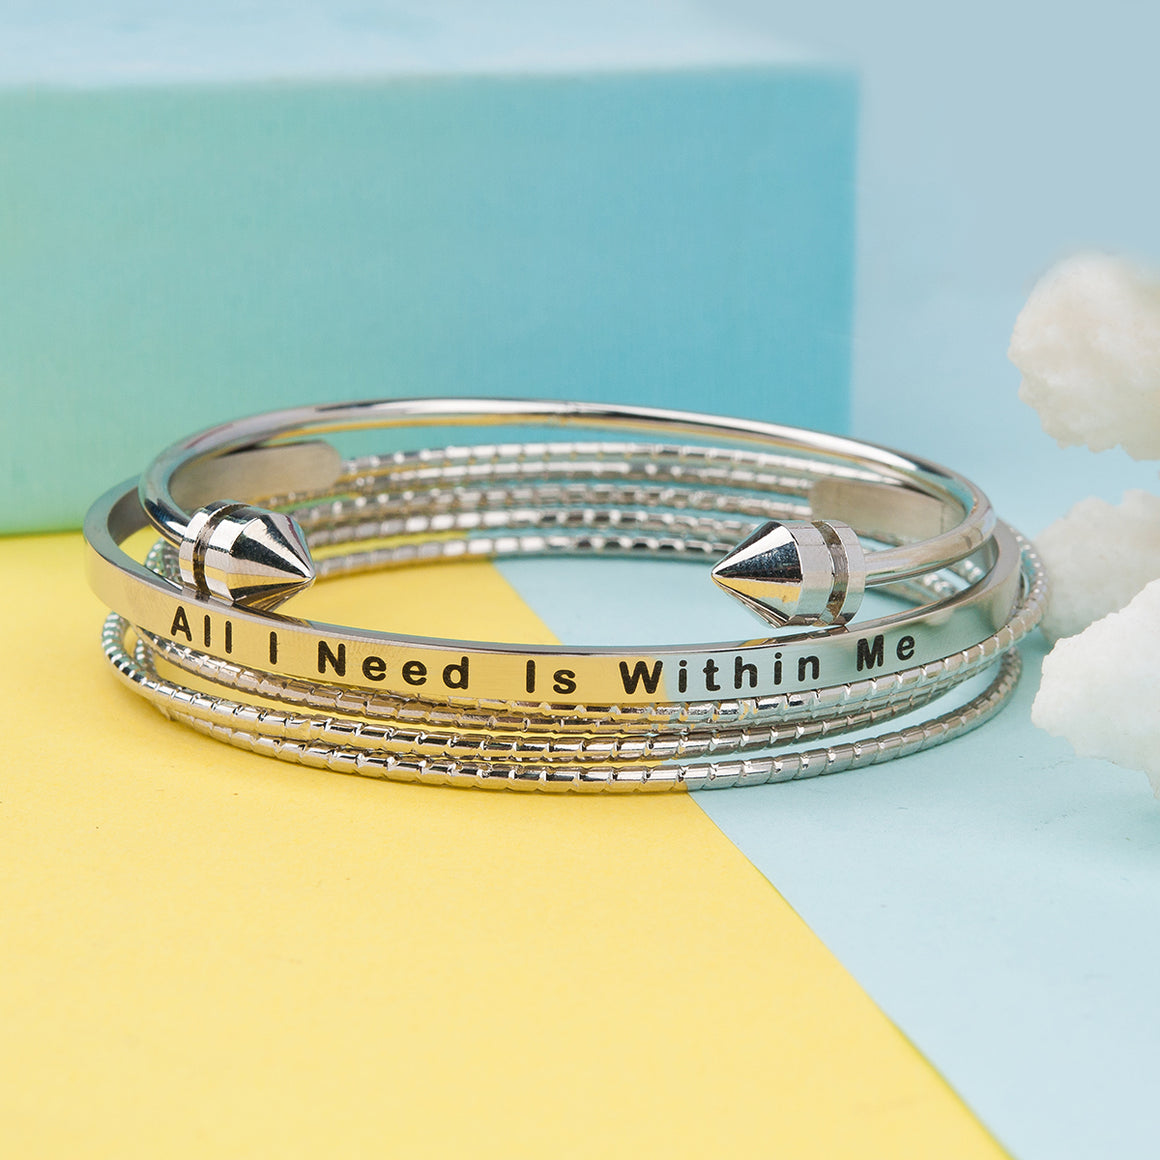 Bangle Set Bracelets All I Need Is Within Me Stainless Steel Stacking Bangles Bracelets